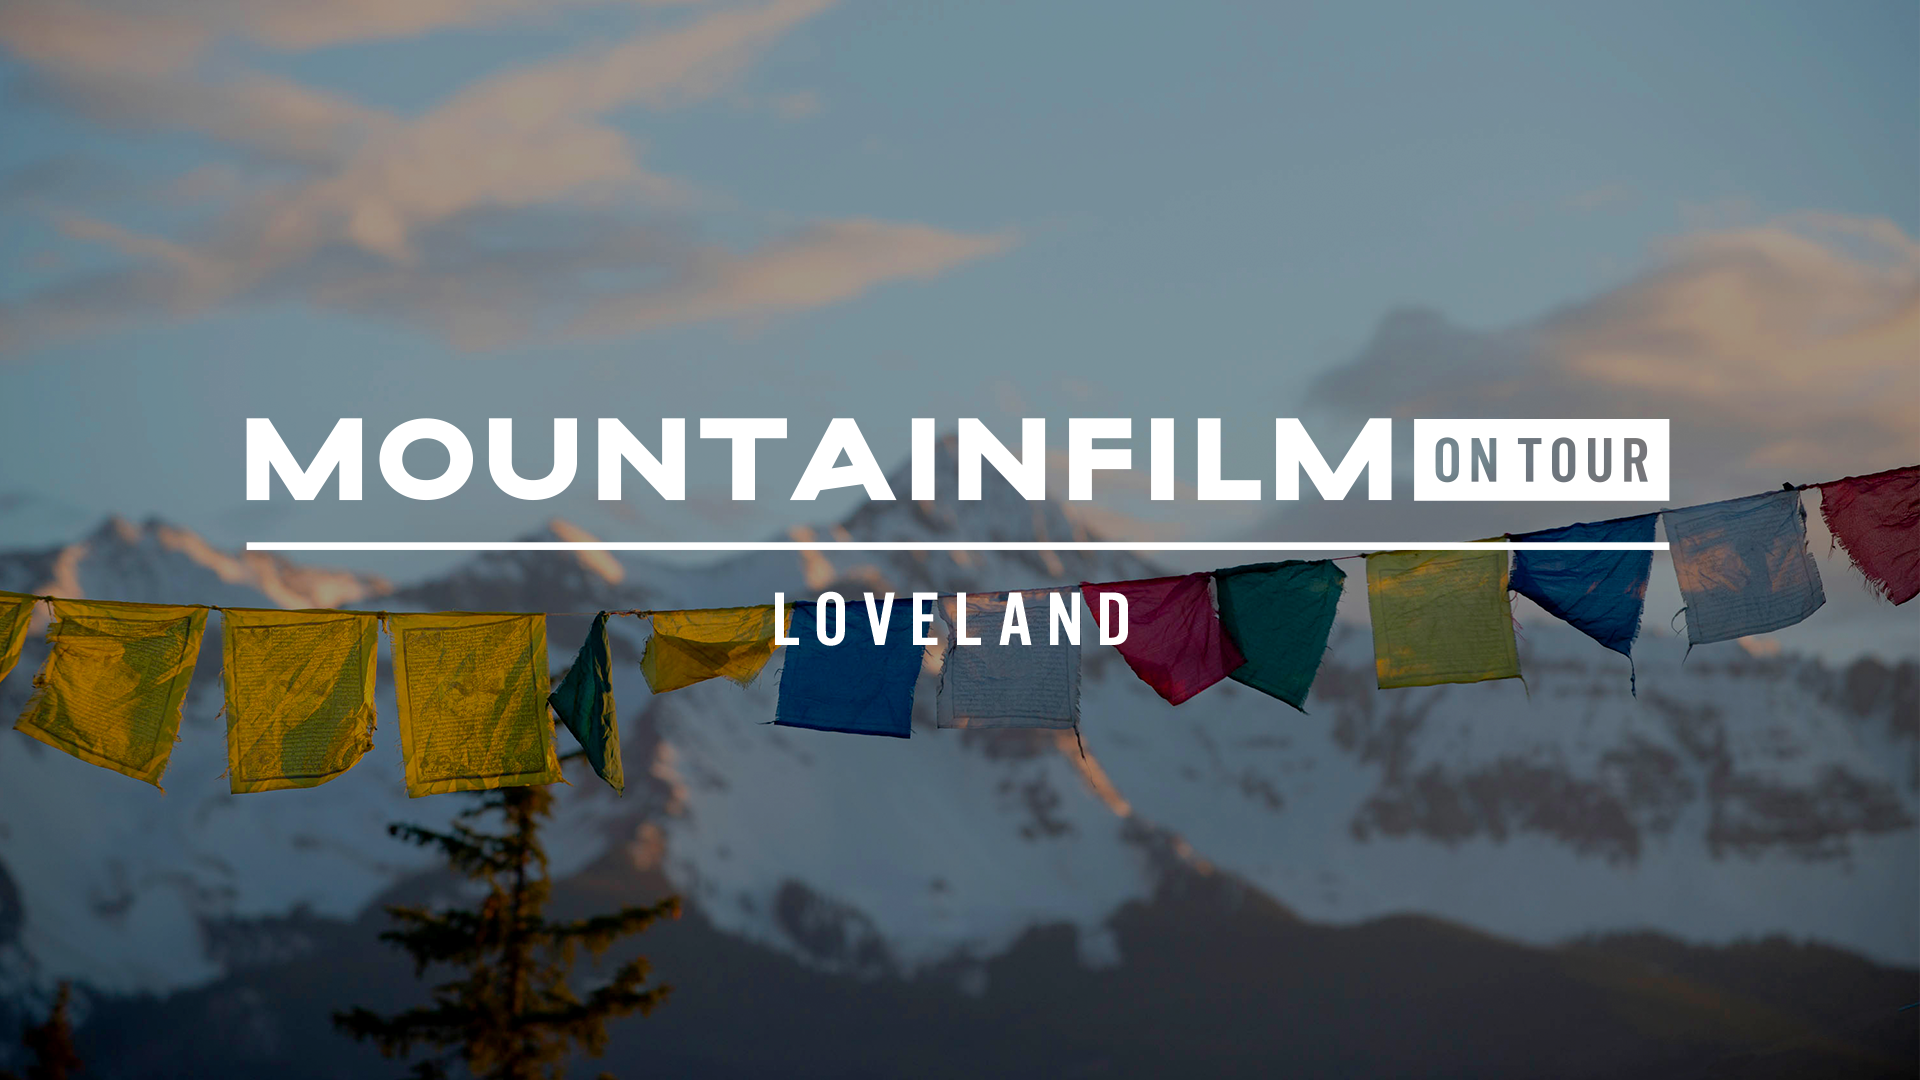 Mountainfilm on Tour - Loveland